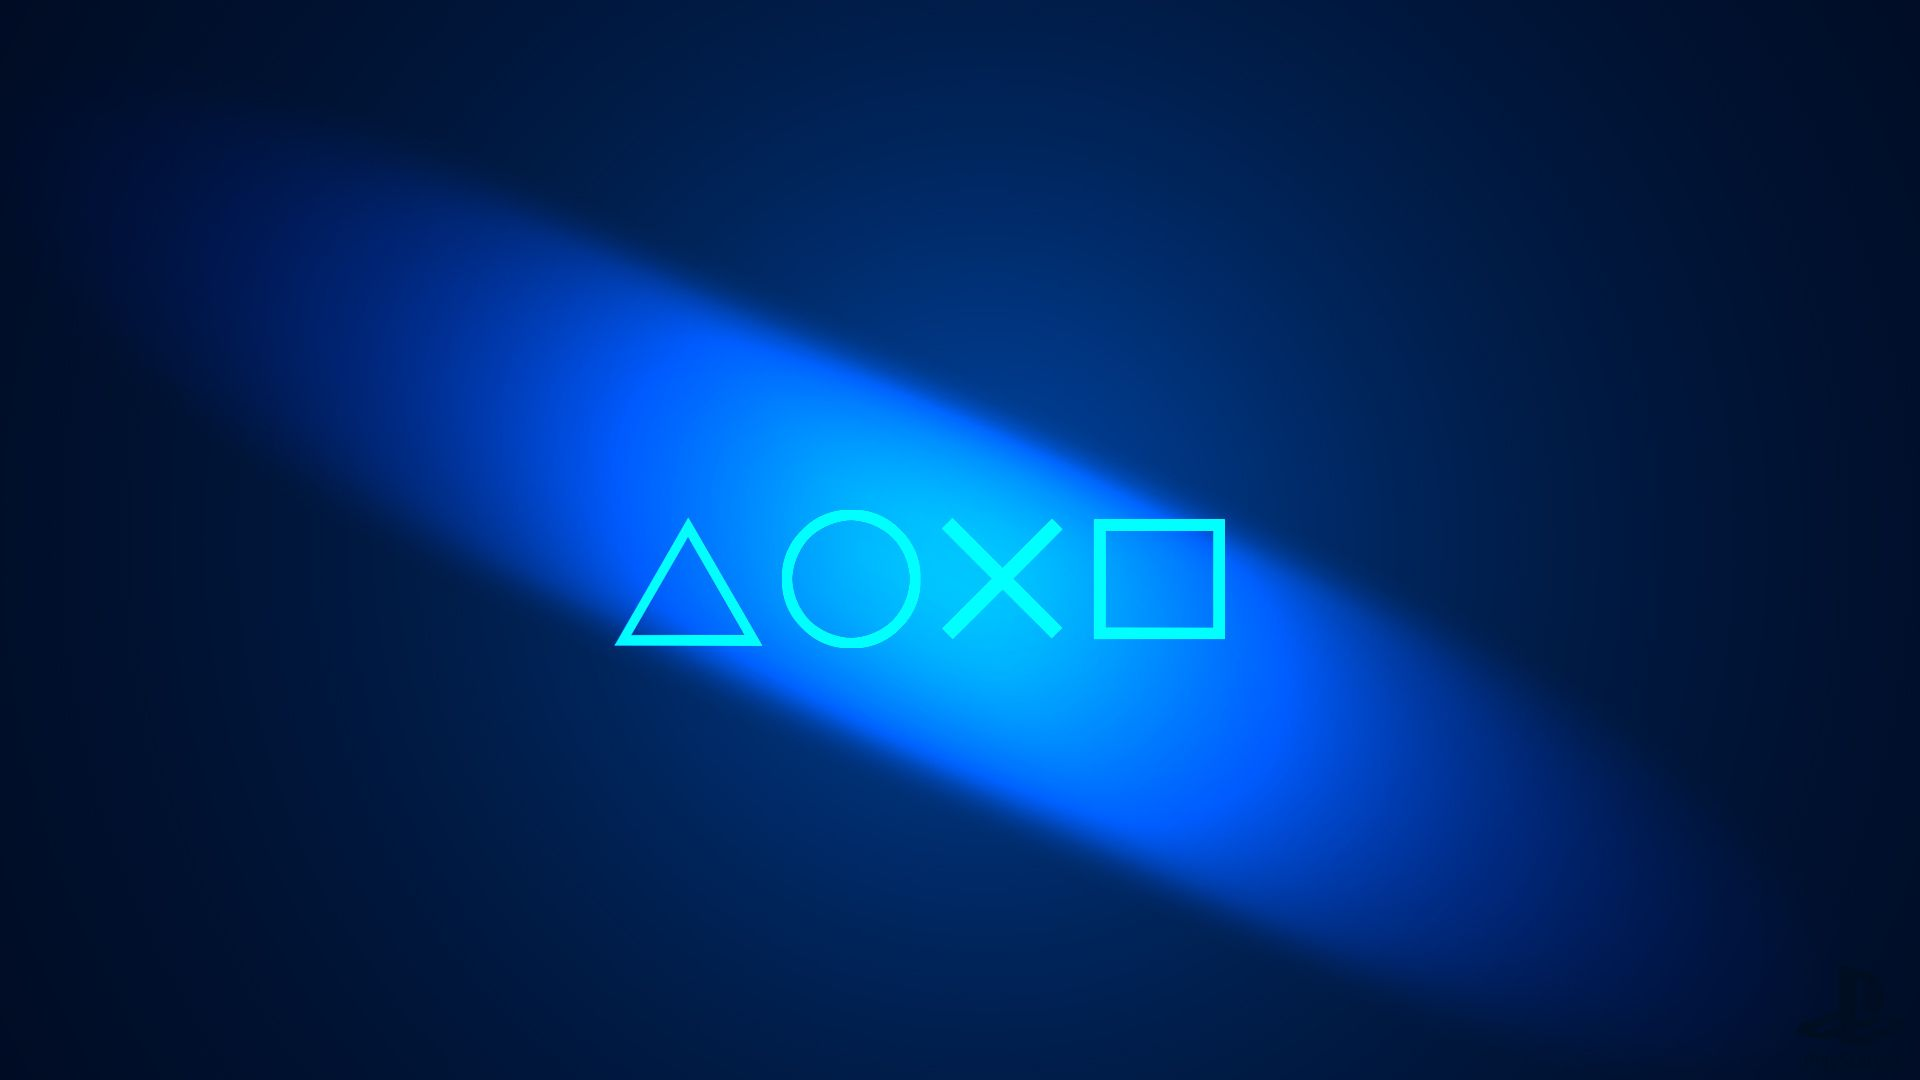 PS5 Wallpapers   Top PS5 Backgrounds   WallpaperAccess 1920x1080